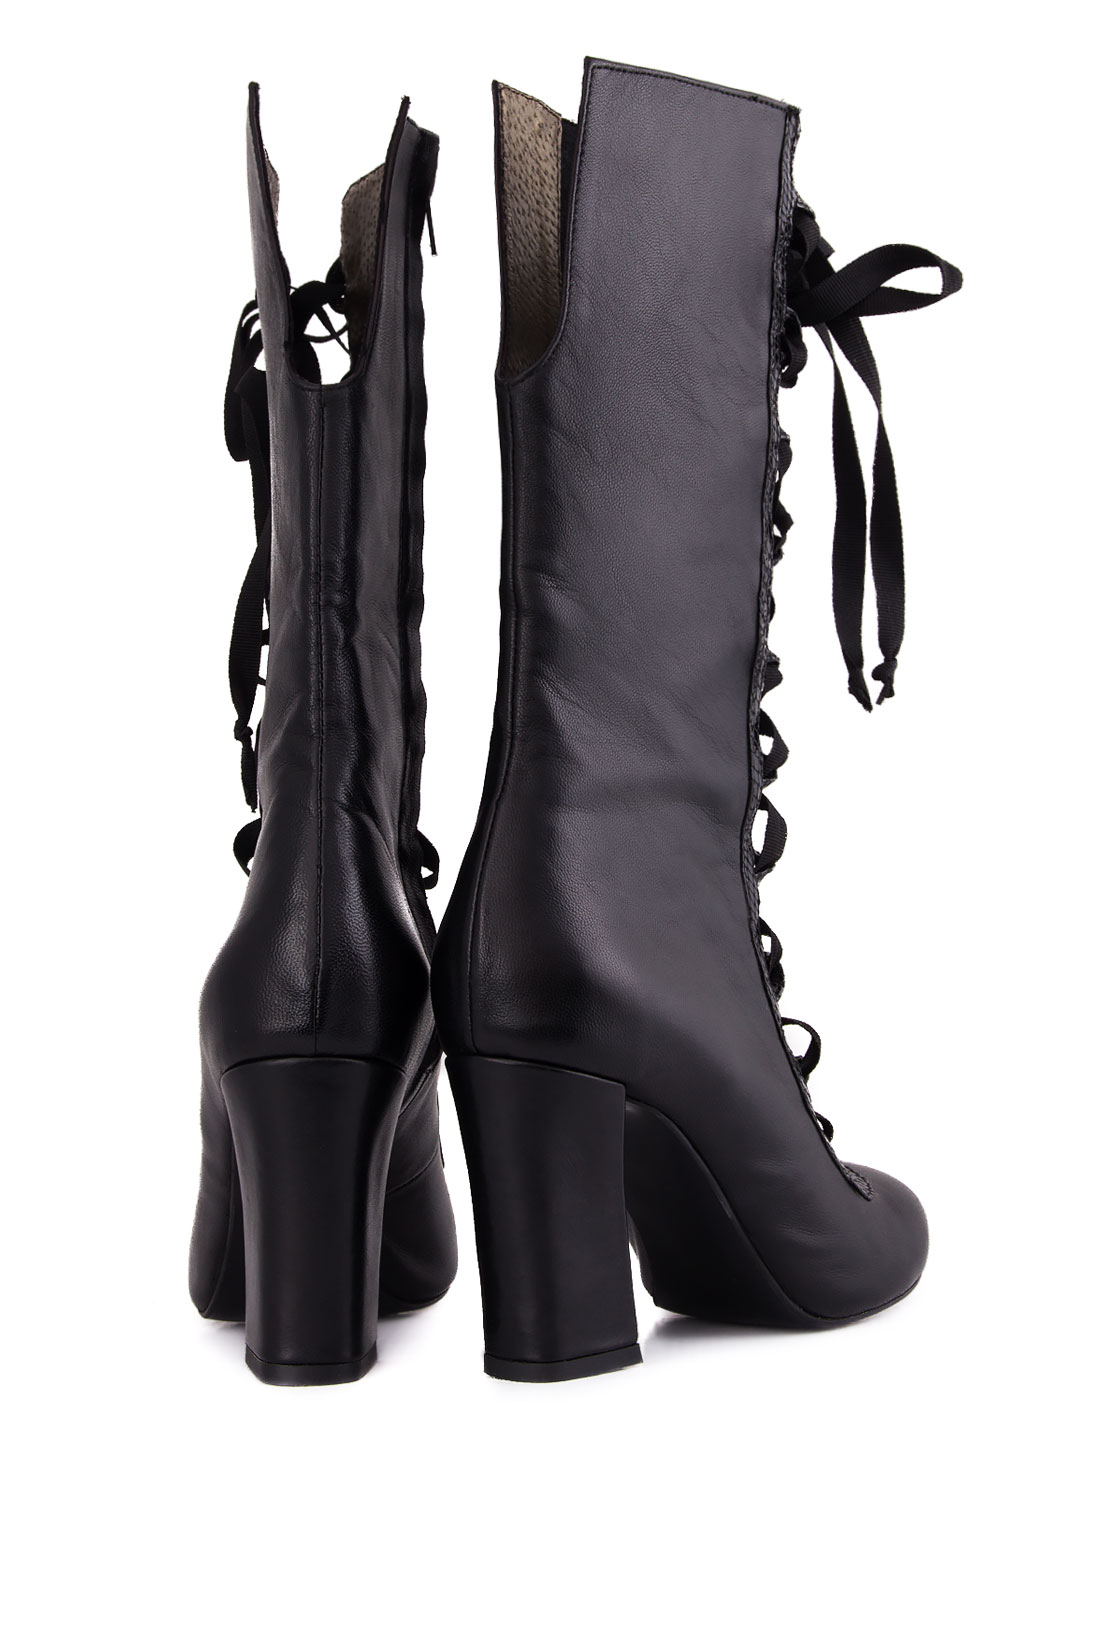 Lace-up leather boots Ana Kaloni image 2